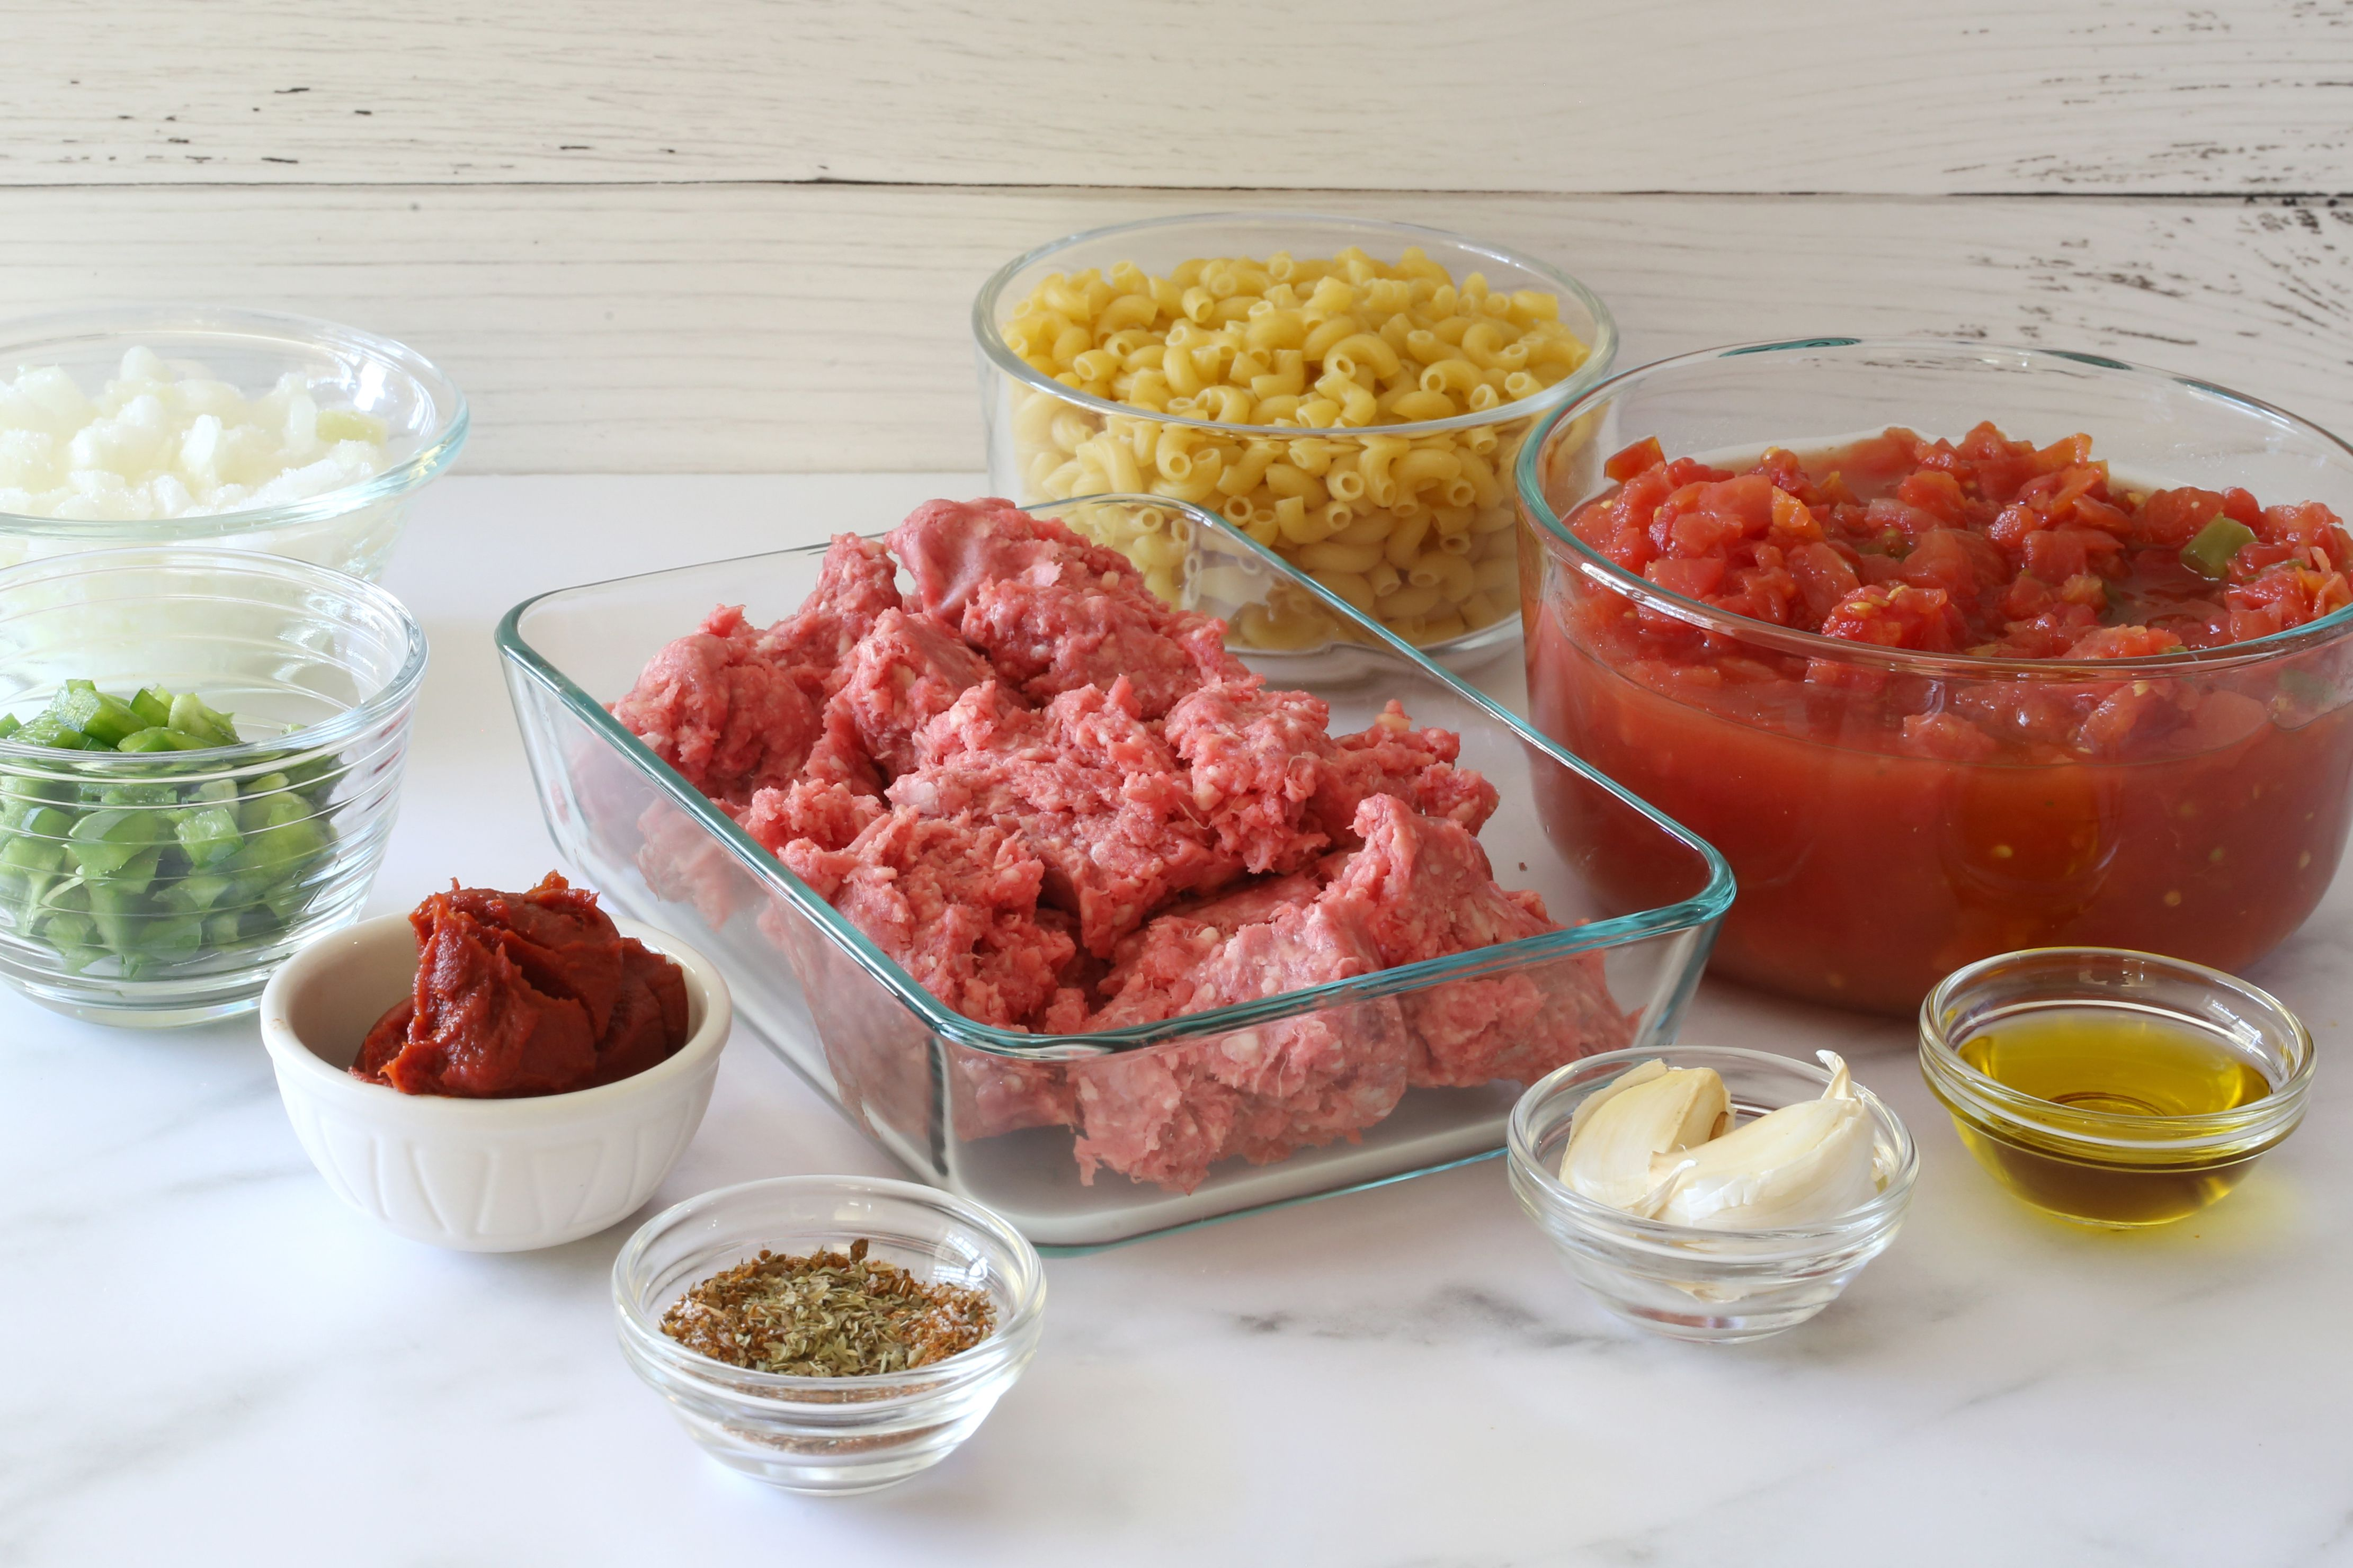 Ingredients for spicy pasta and ground beef.